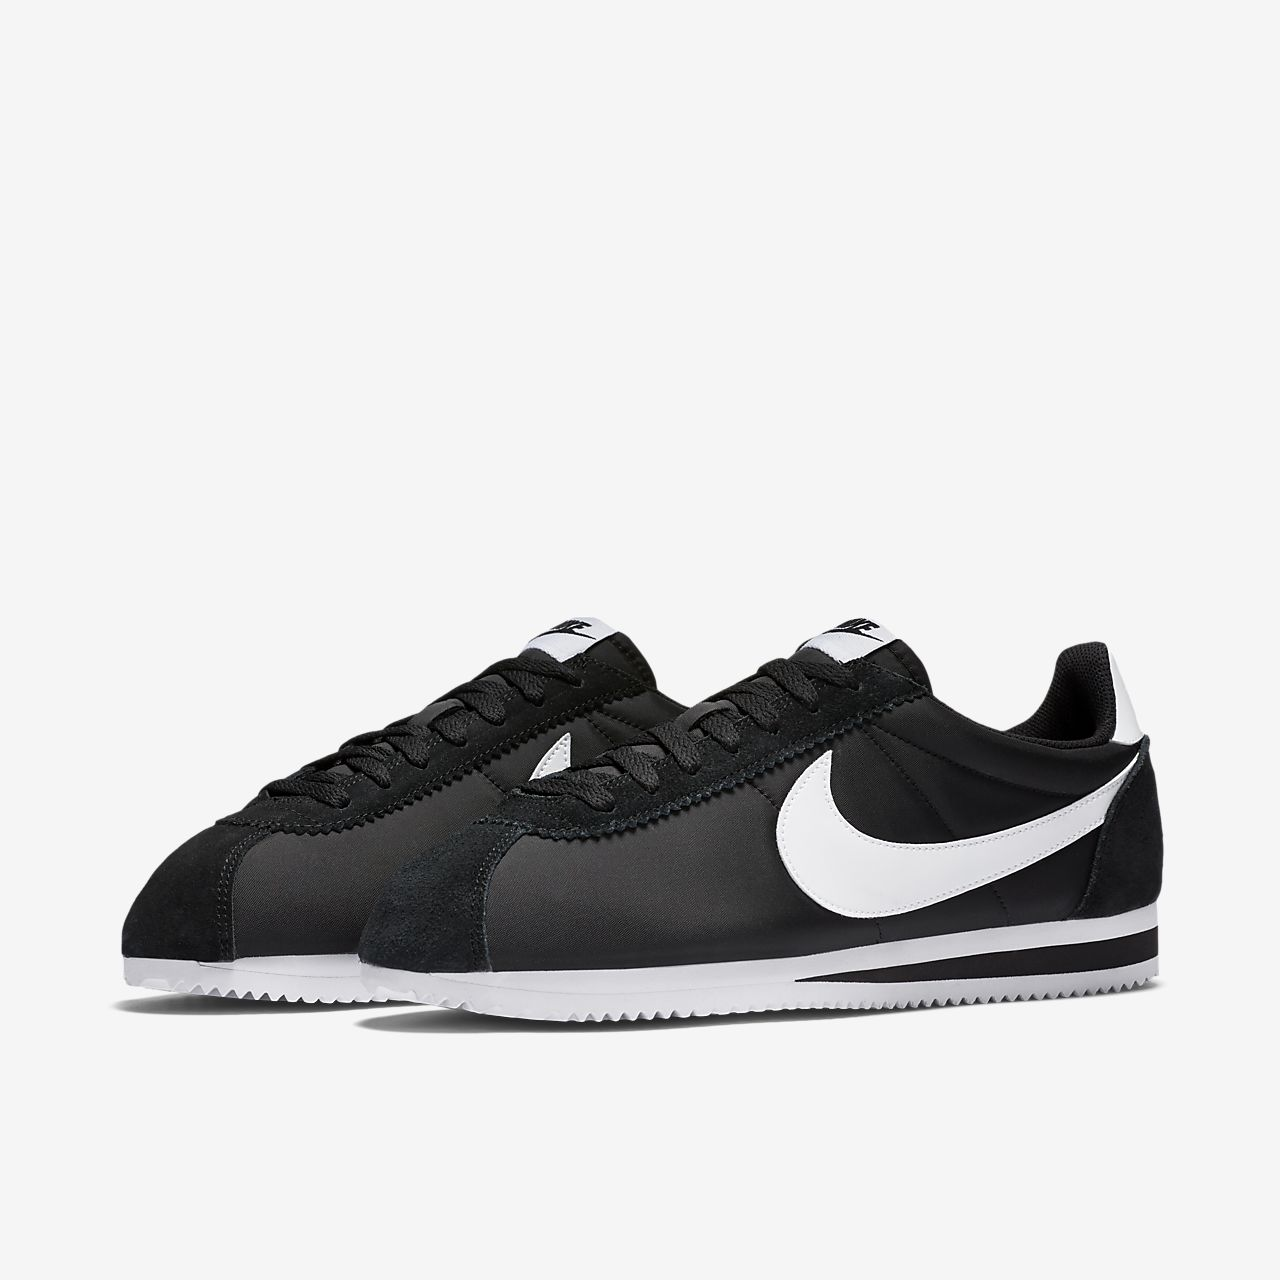 outlet store 606e3 1347d Low Resolution Nike Classic Cortez Nylon Unisex Shoe Nike Classic Cortez  Nylon Unisex Shoe